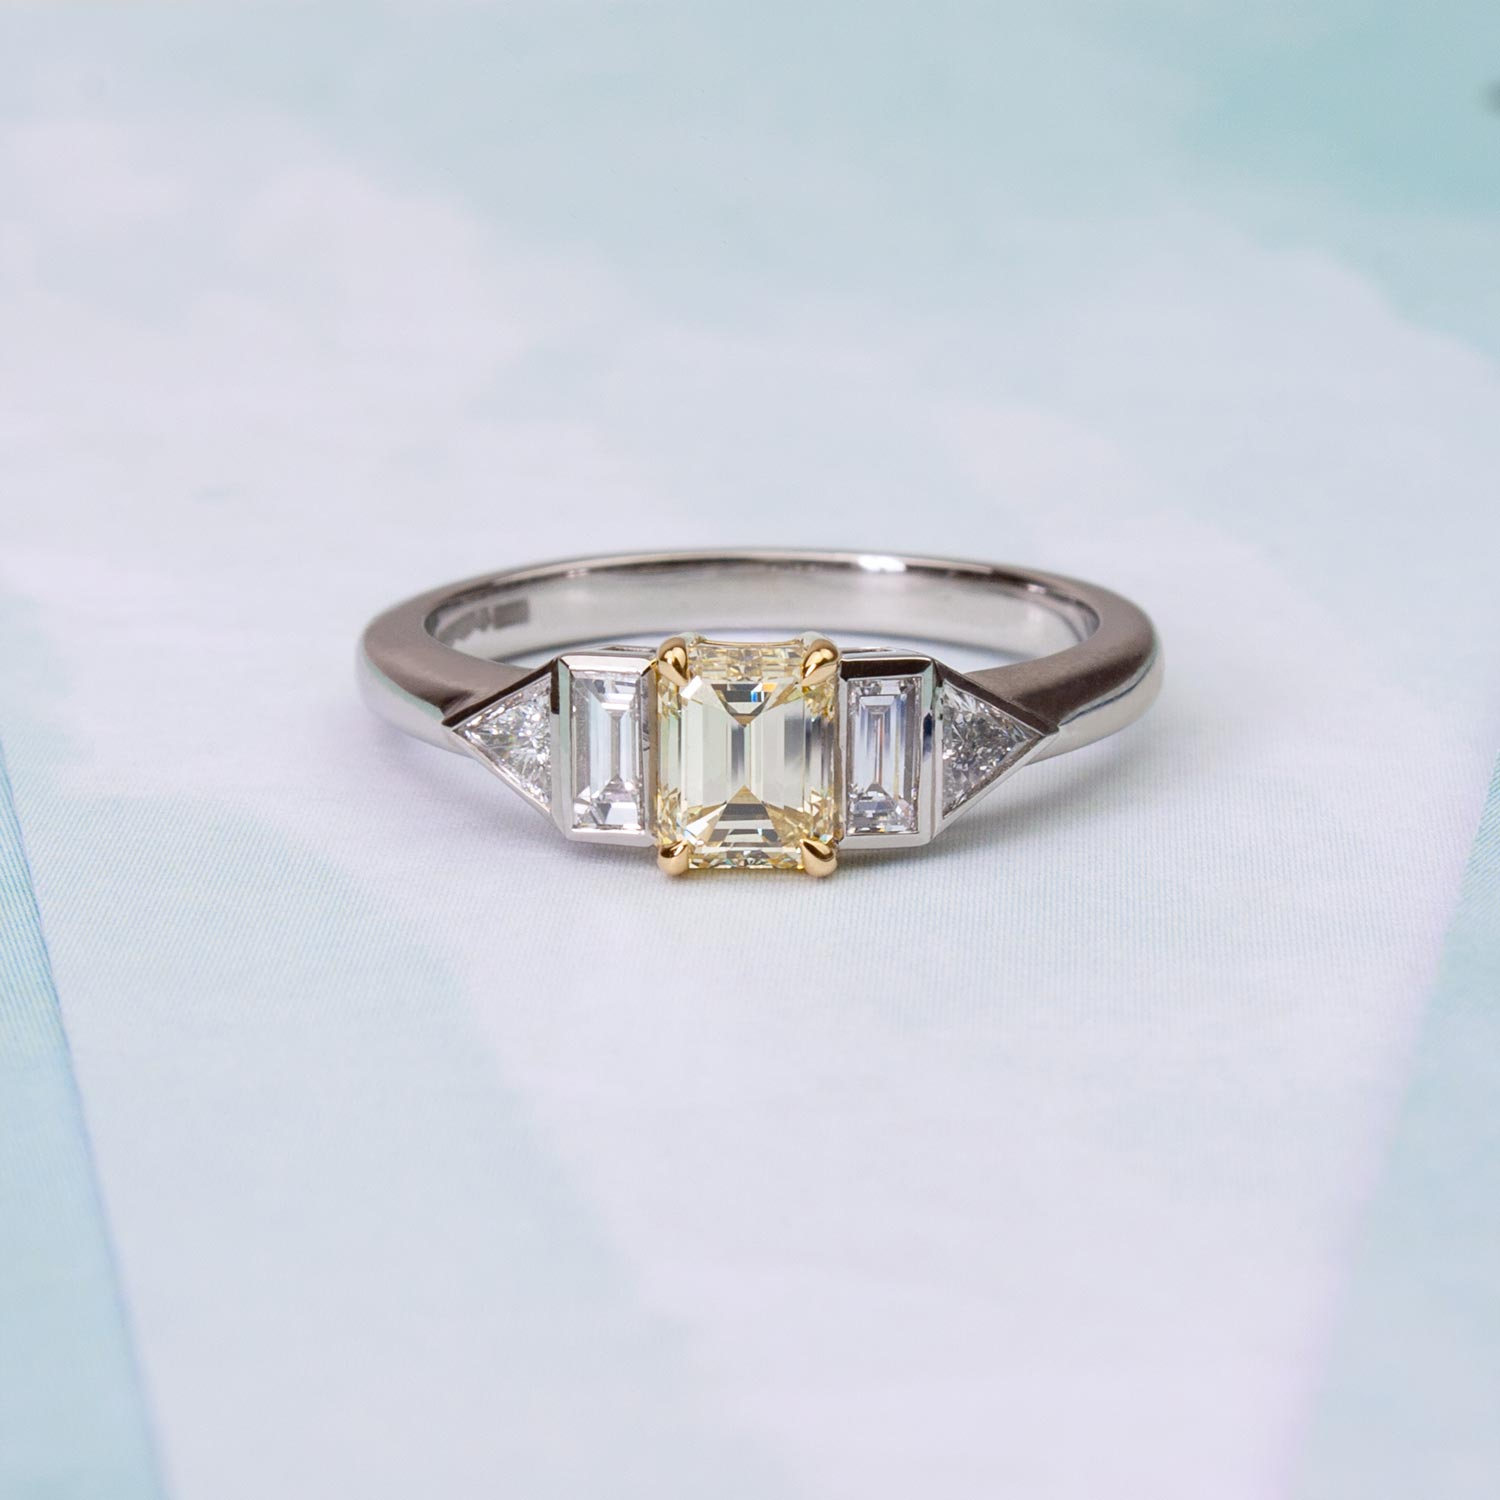 Platinum-and-yellow-gold-diamond-ring-a.jpg